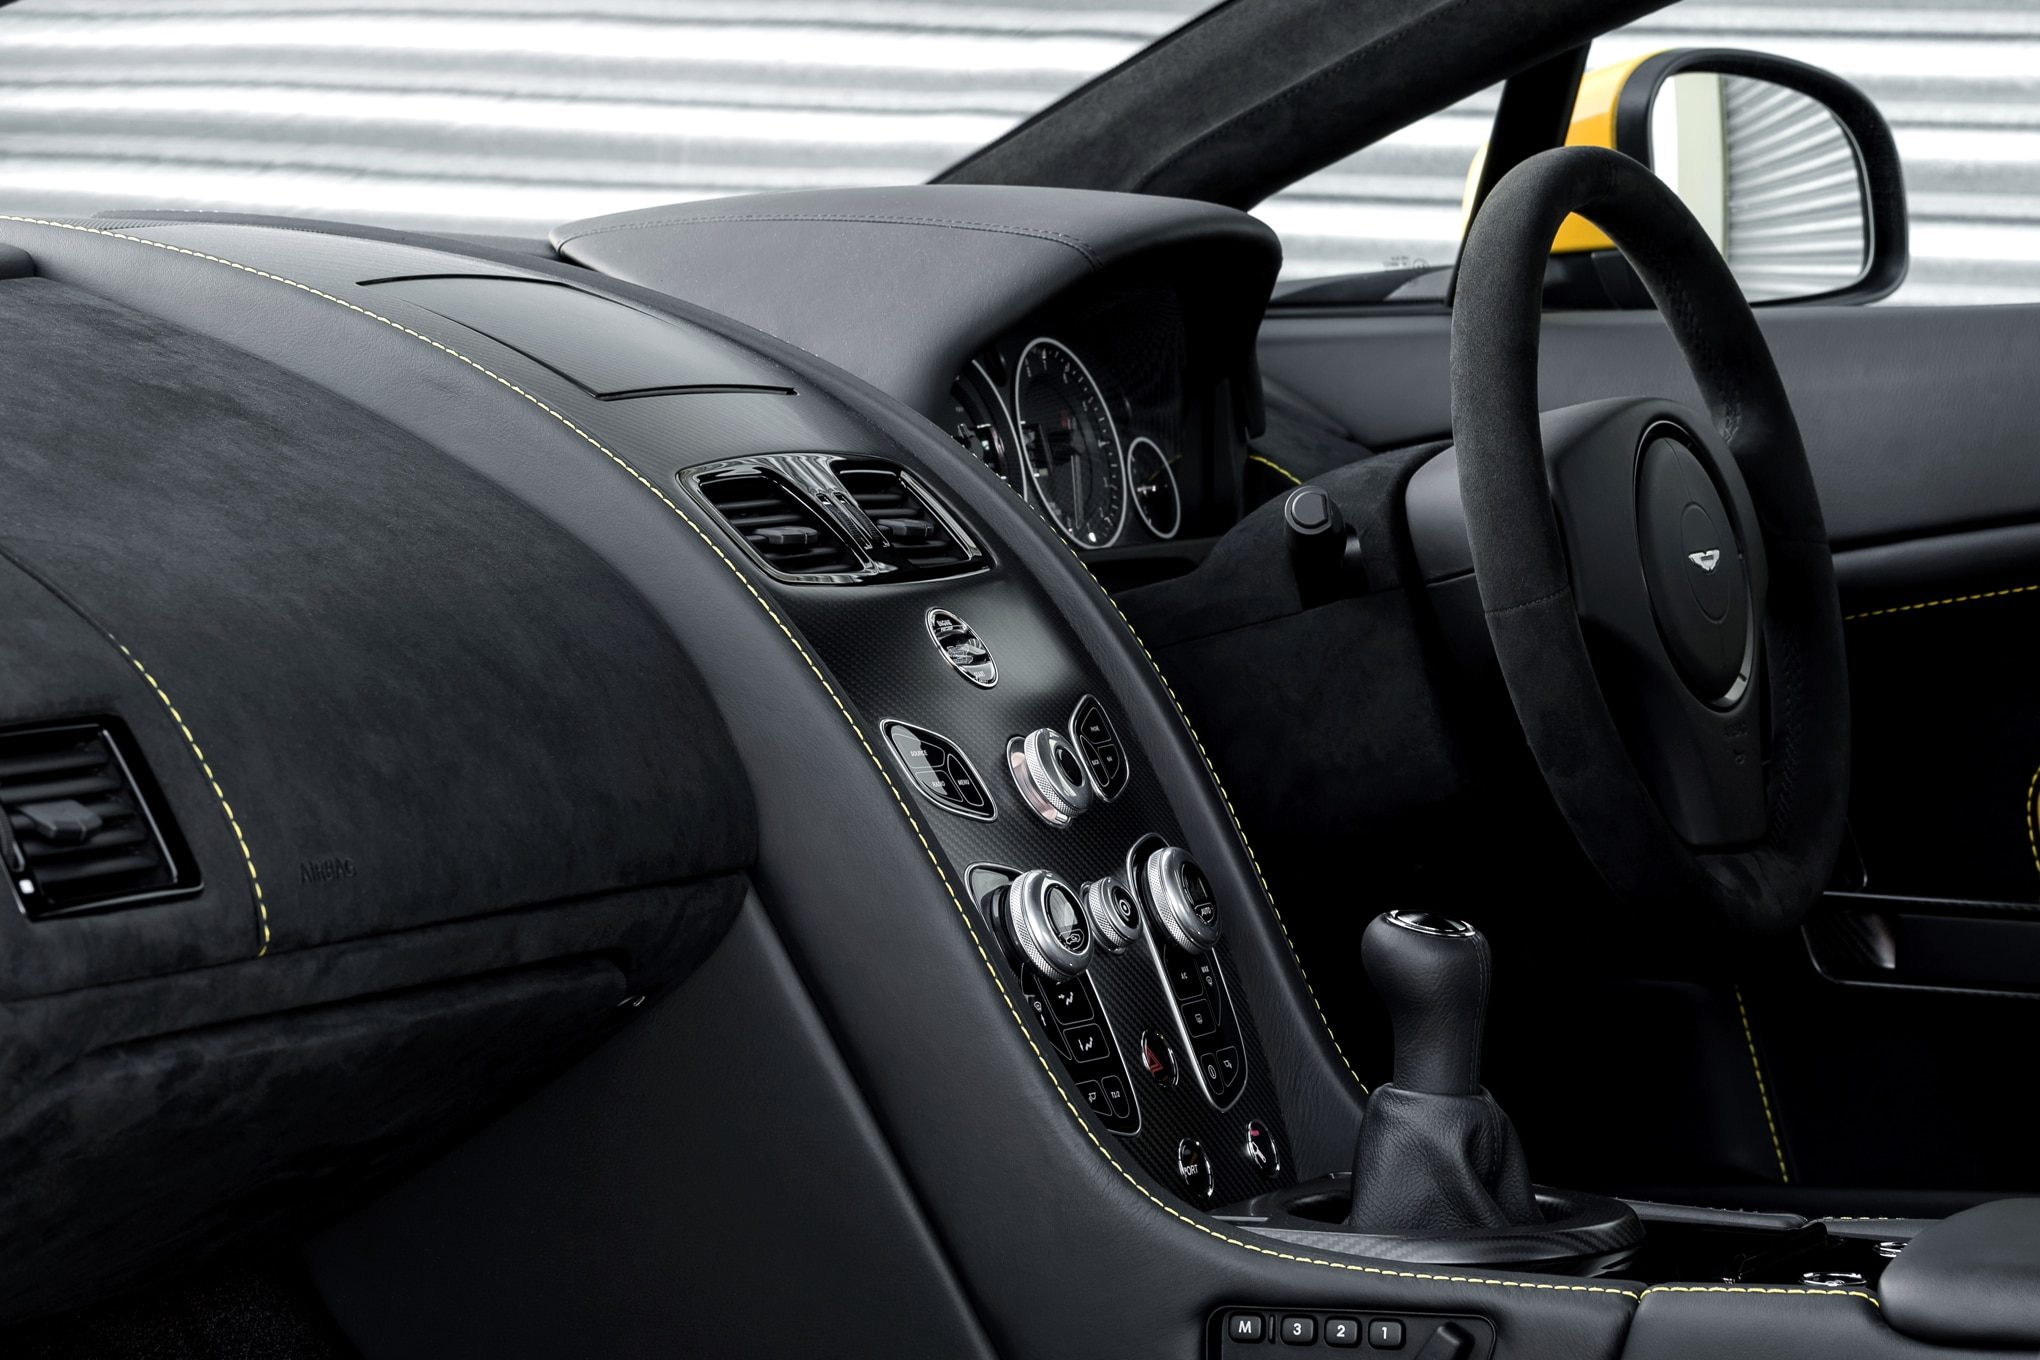 The 2017 Aston Martin V12 Vantage S Will Offer a 7-Speed ...